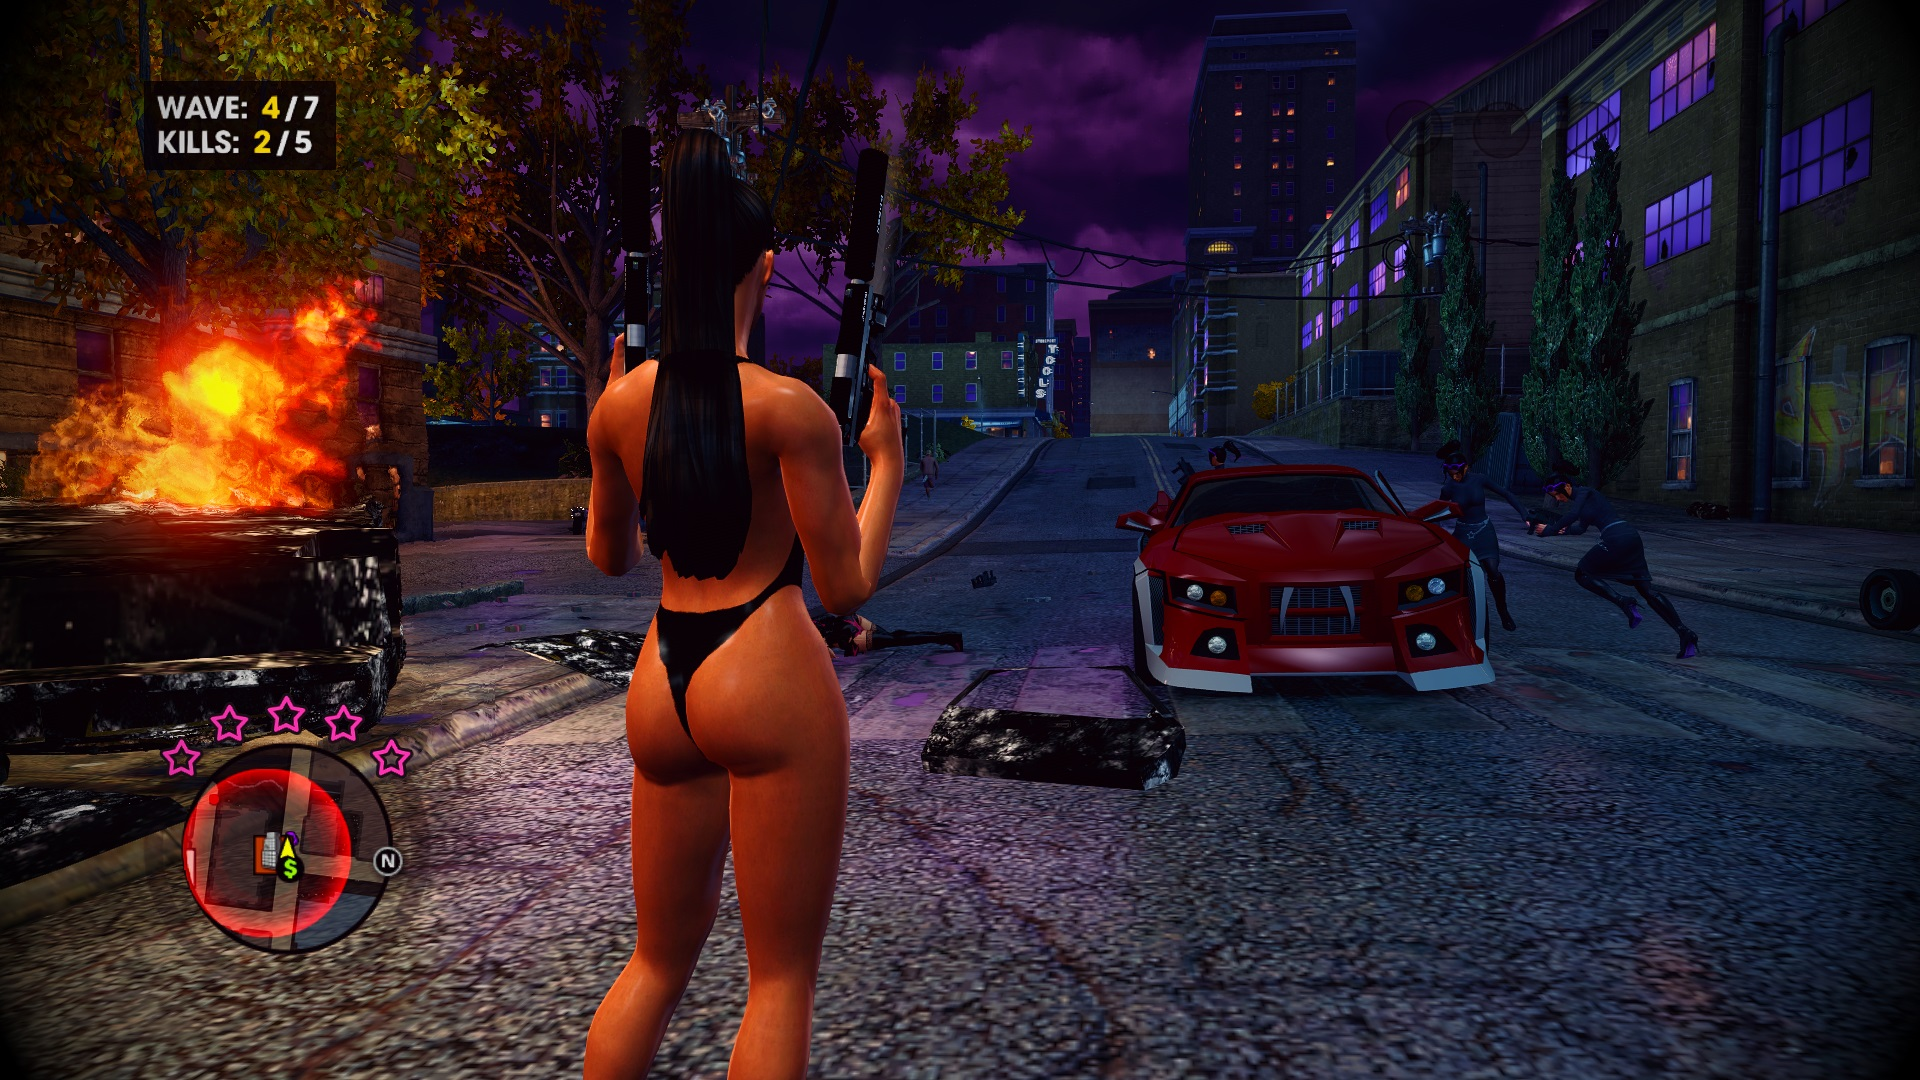 Saints Row The Third Nude Mod / Saints Row 3 [+18] Mod HD